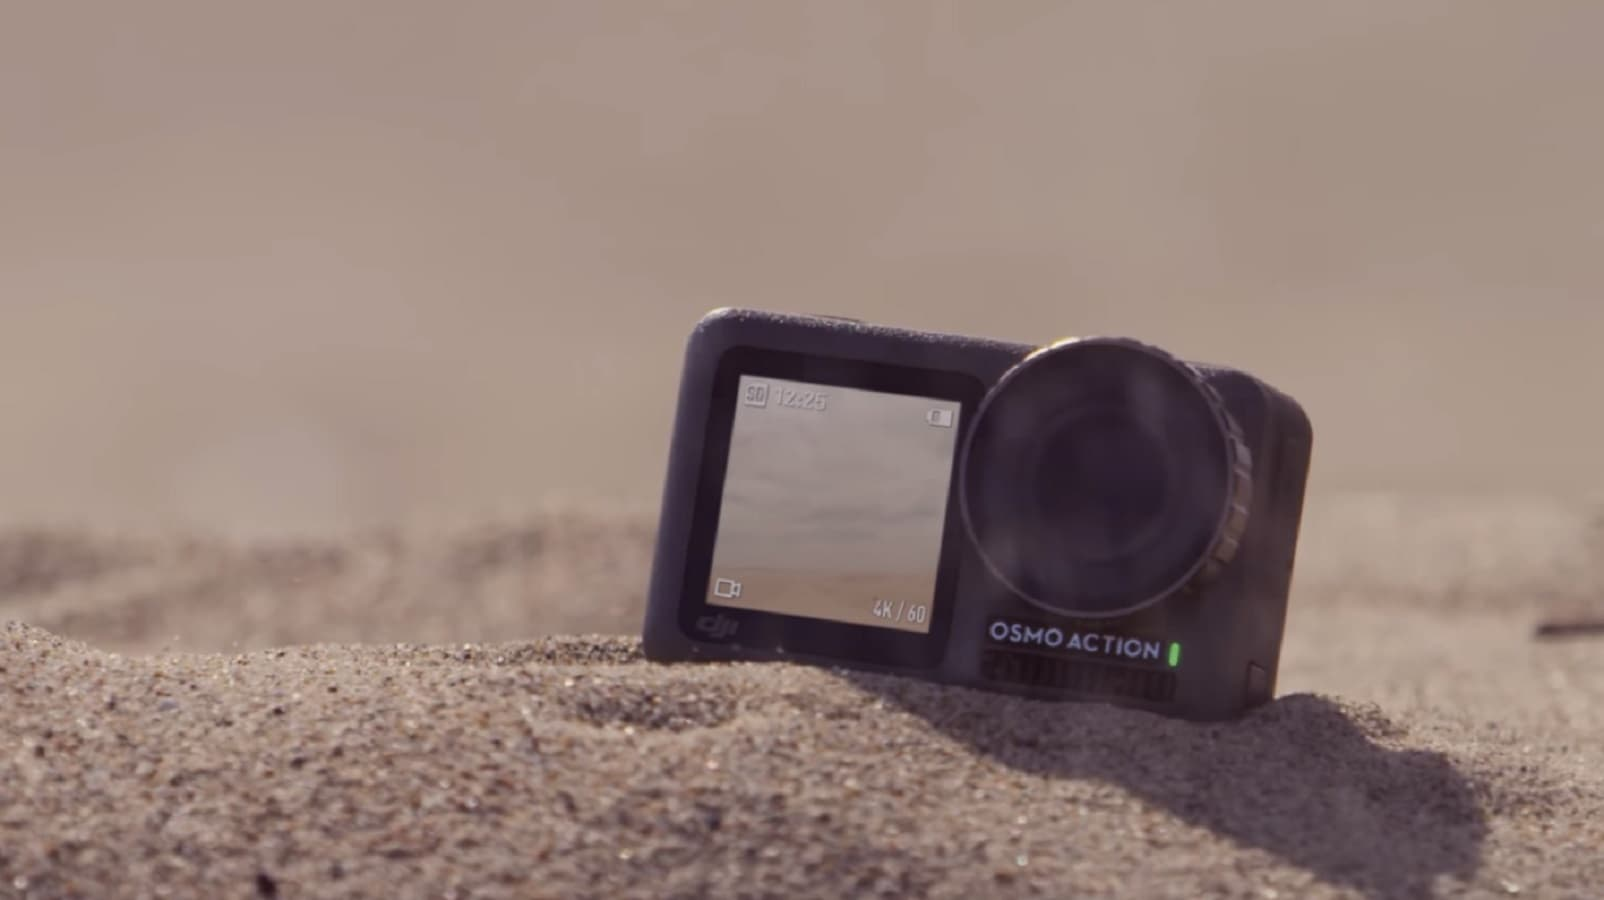 dji osmo action camera in sand